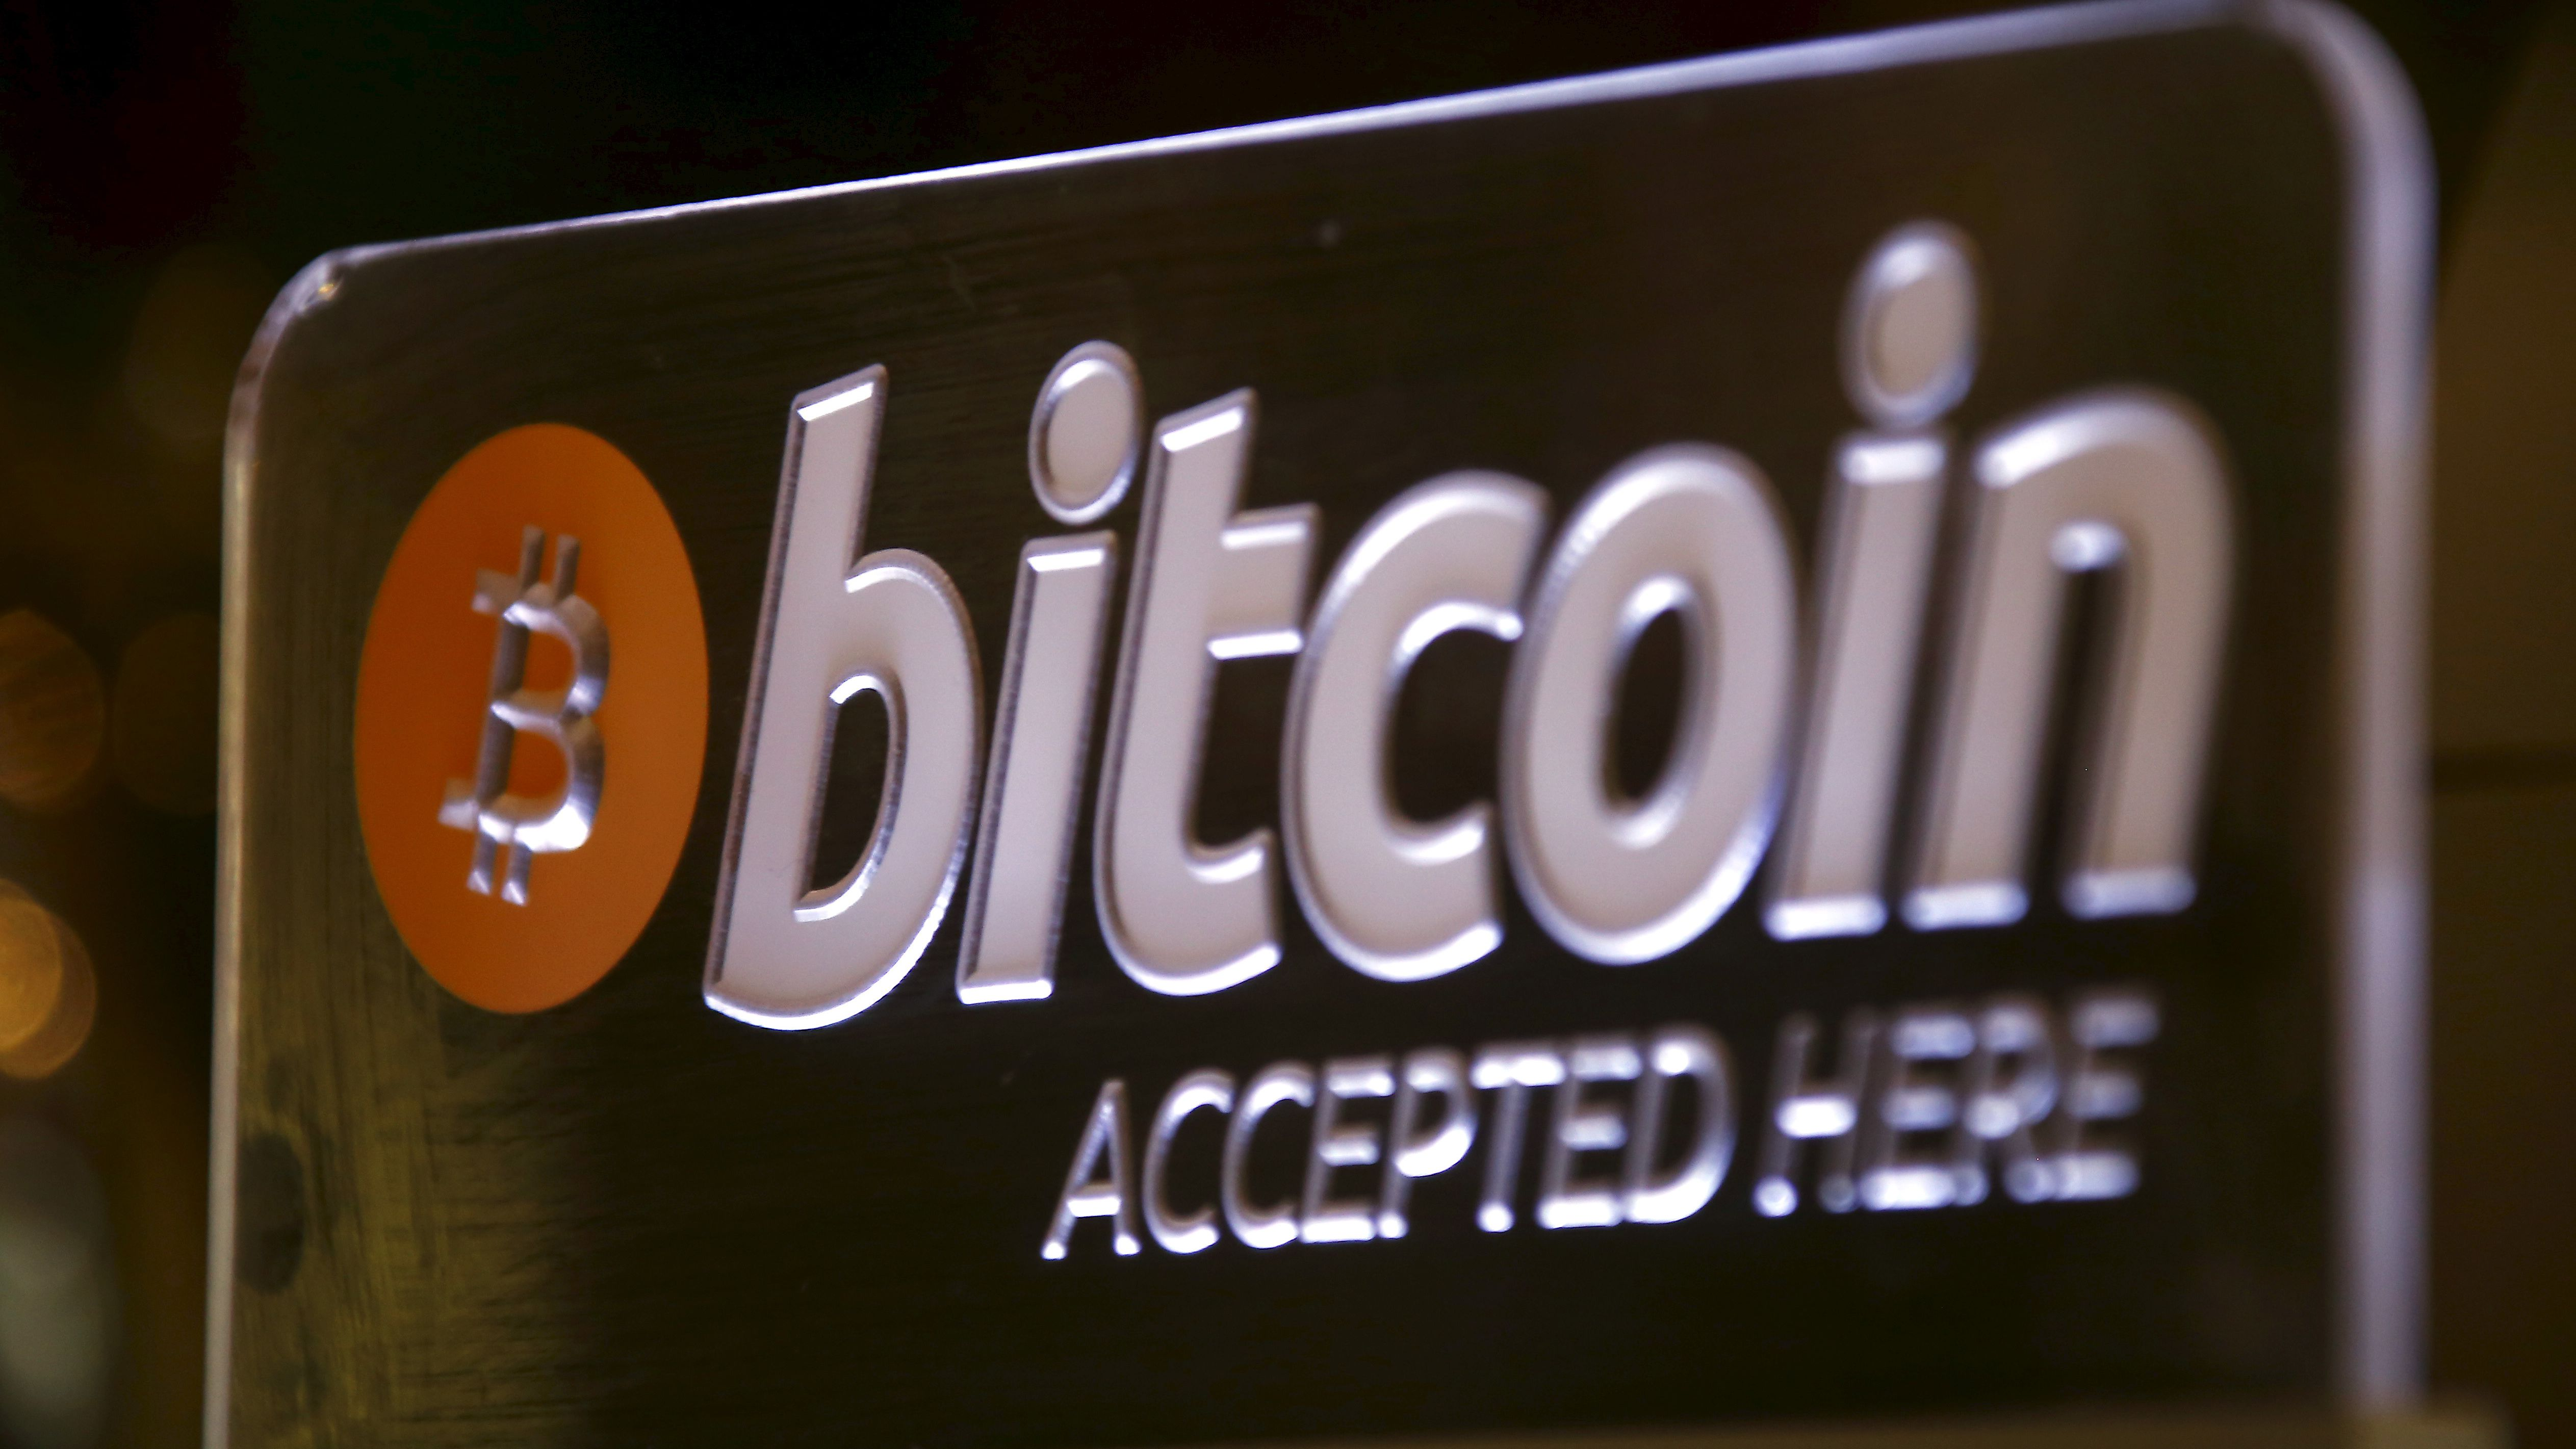 A Bitcoin sign can be seen on display at a bar in central Sydney, Australia, September 29, 2015. Australian businesses are turning their backs on bitcoin, as signs grow that the cryptocurrency's mainstream appeal is fading. Concerns about bitcoin's potential crime links mean many businesses have stopped accepting it, a trend accelerated by Australian banks' move last month to close the accounts of 13 of the country's 17 bitcoin exchanges. Picture taken September 29, 2015.